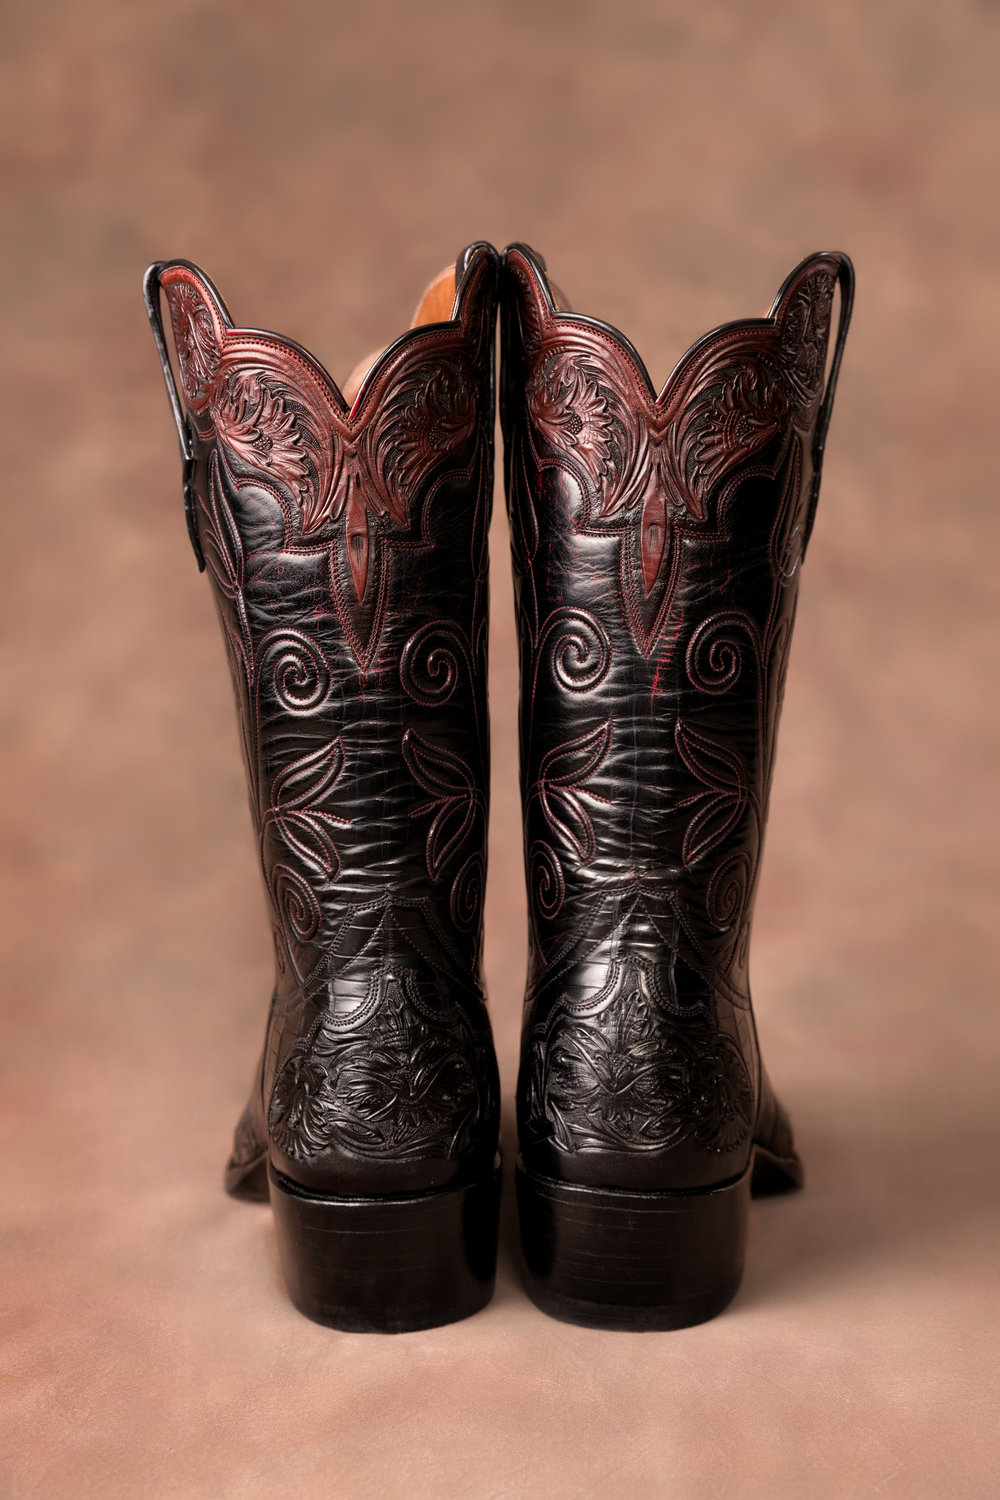 Fry Black Cherry Kangaroo tops with hand tooled collars wingtips and heel foxing over Black American Alligator vamps